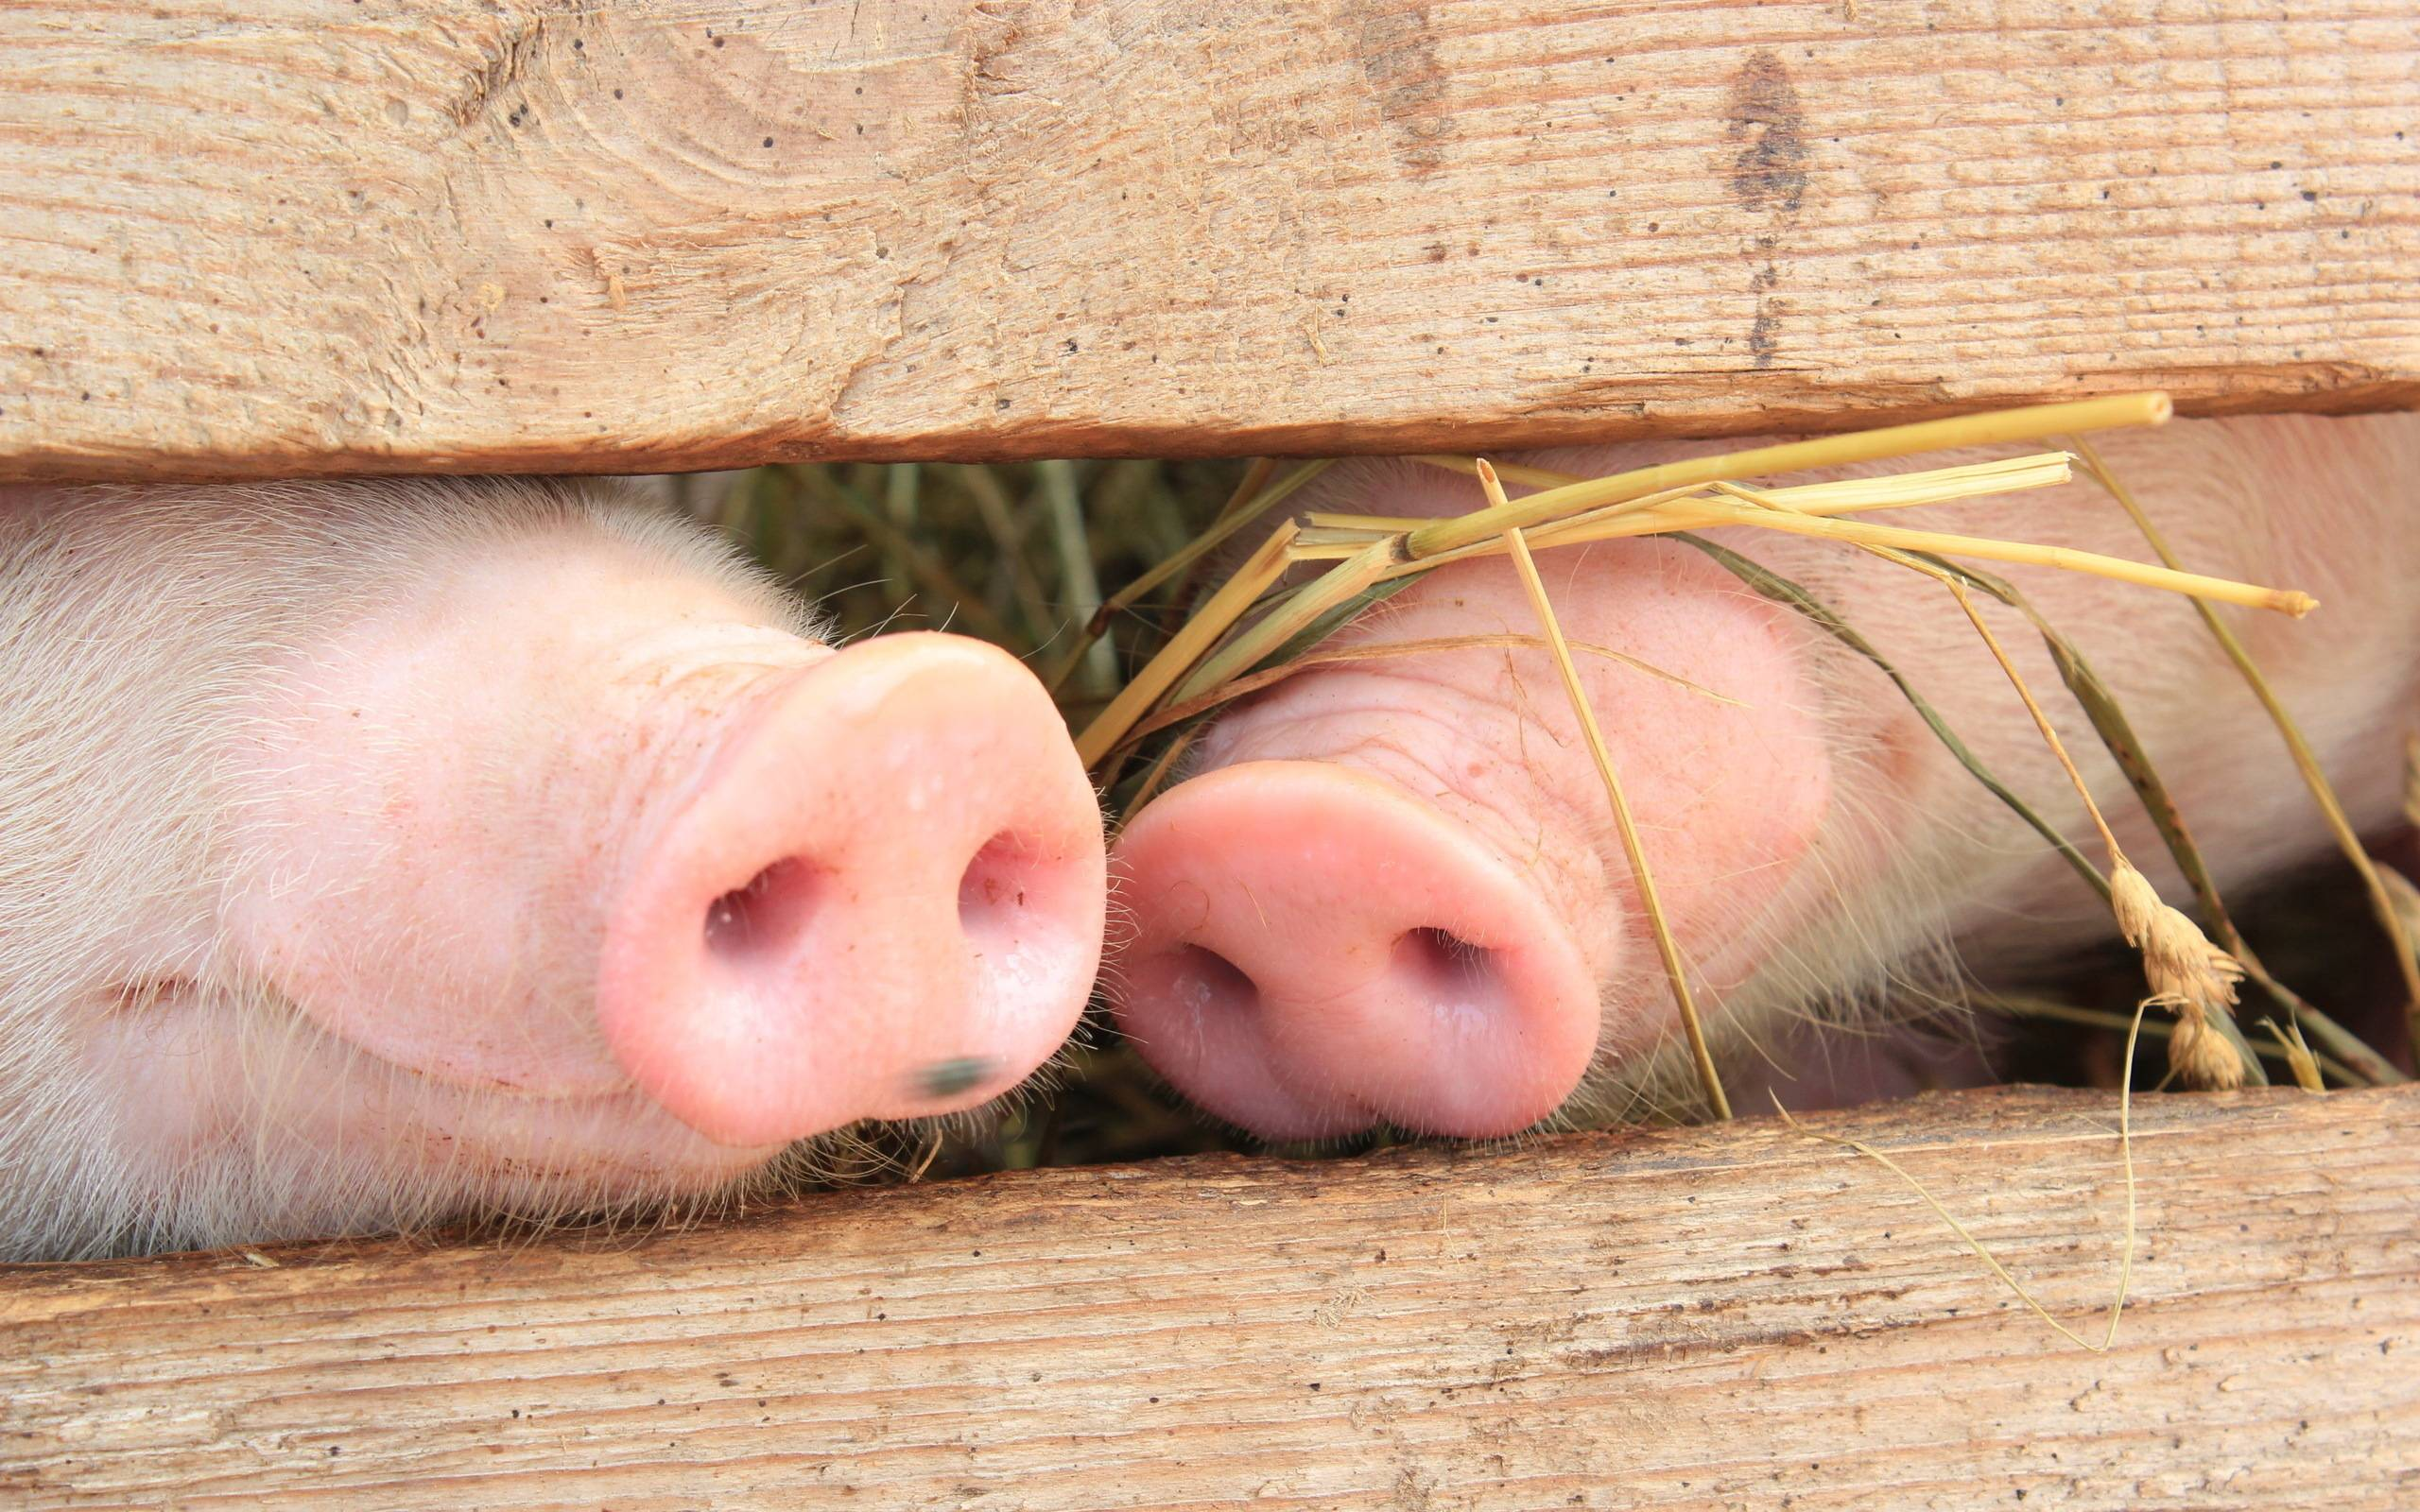 Pig heels wallpapers and images - wallpapers, pictures, photos